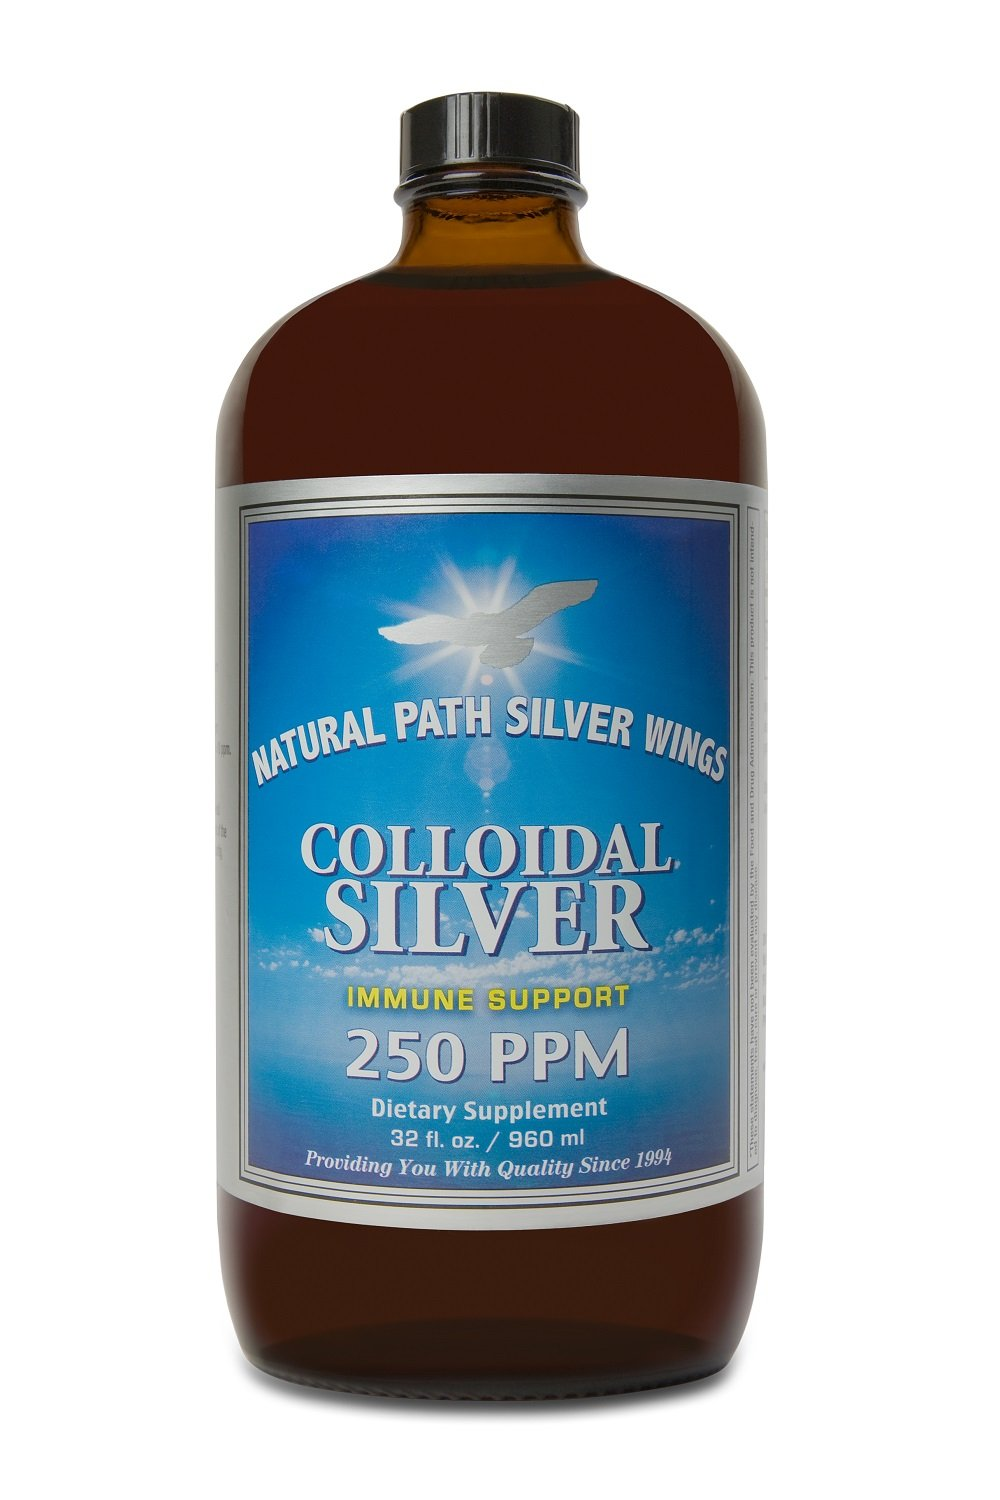 Natural Path Silver Wings Colloidal Silver Mineral Supplement, 250 Ppm, 32 Fluid Ounce